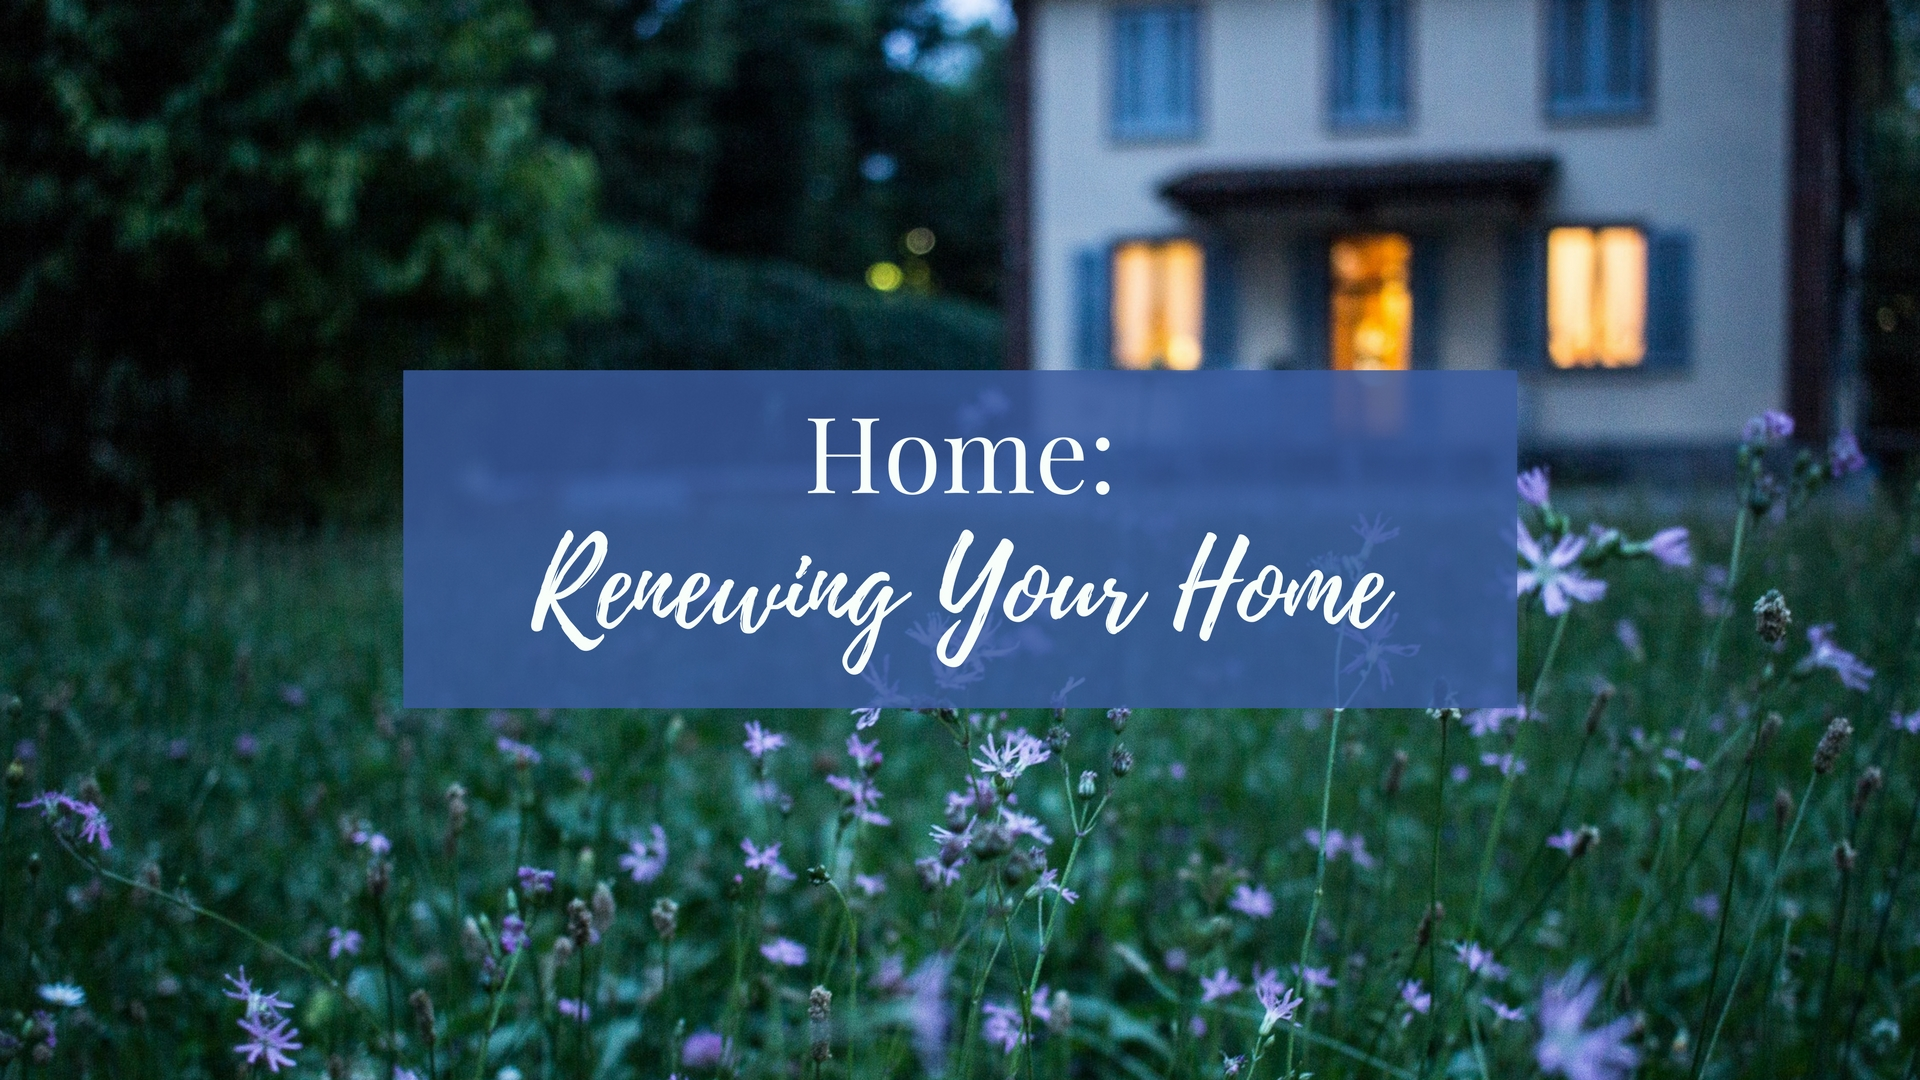 LWS Renewing Your Home (blue).jpg